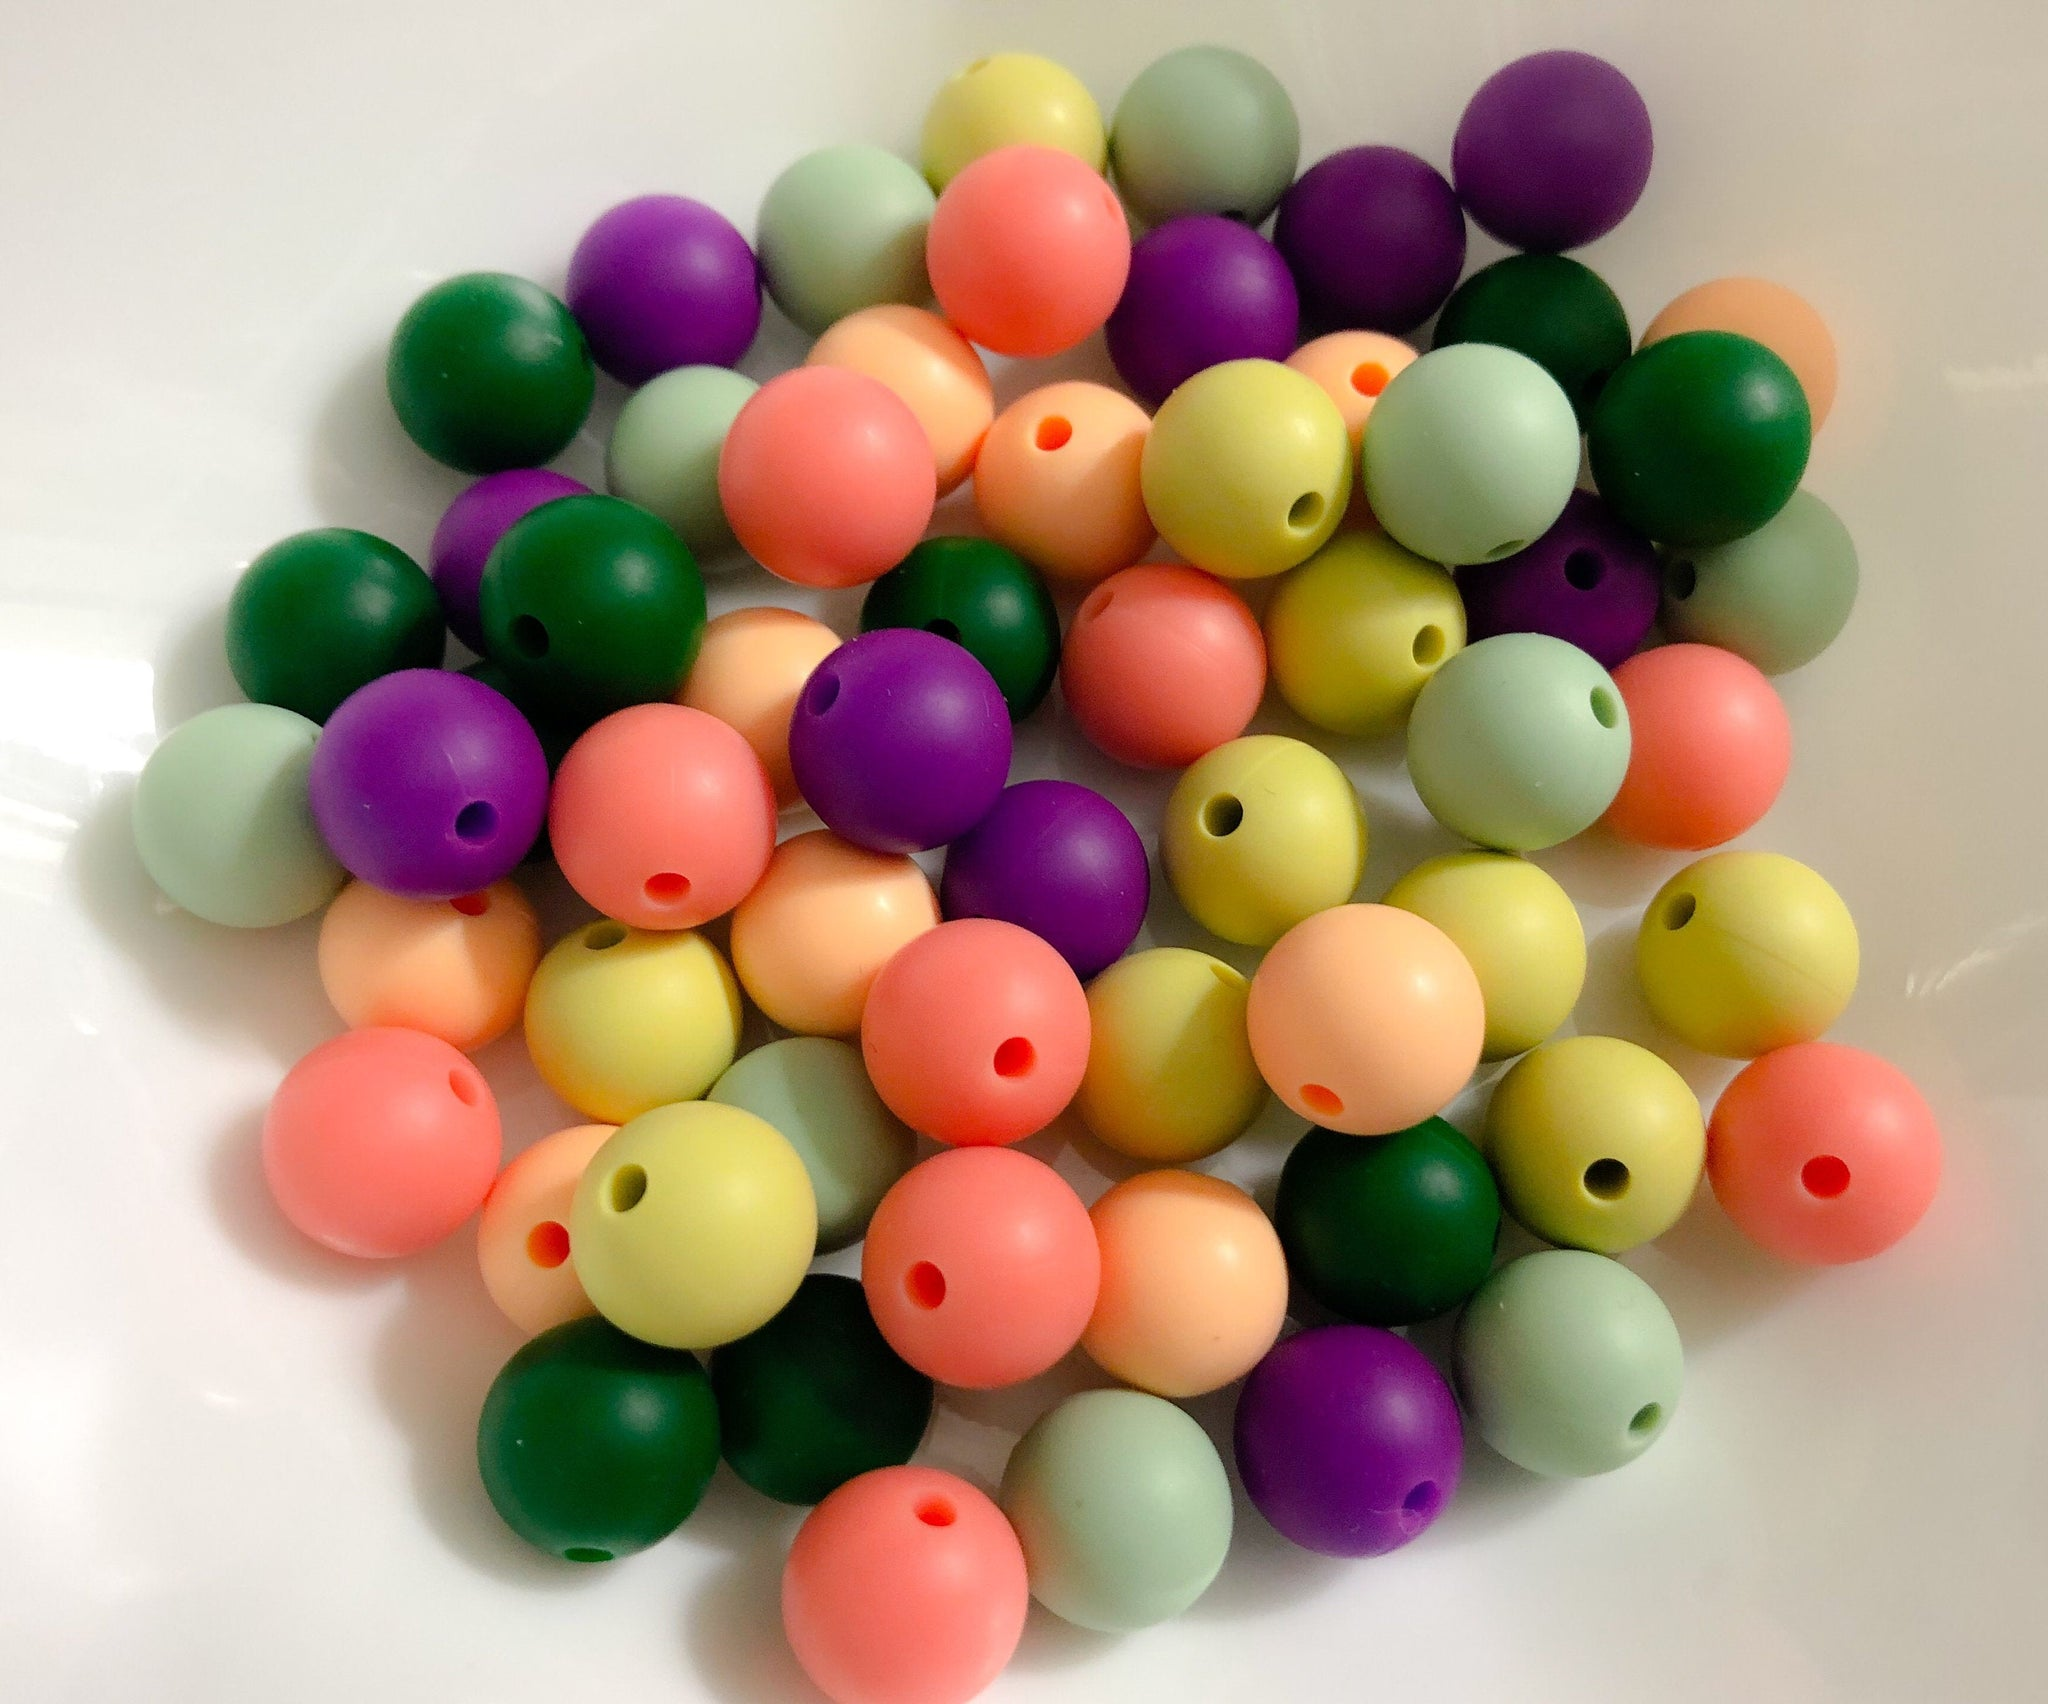 60 Bulk Silicone Teething Beads - Lilies - Evergreen, Sweet Mint, Celery, Peach, Carnation, Plum - Bulk Silicone Beads Wholesale